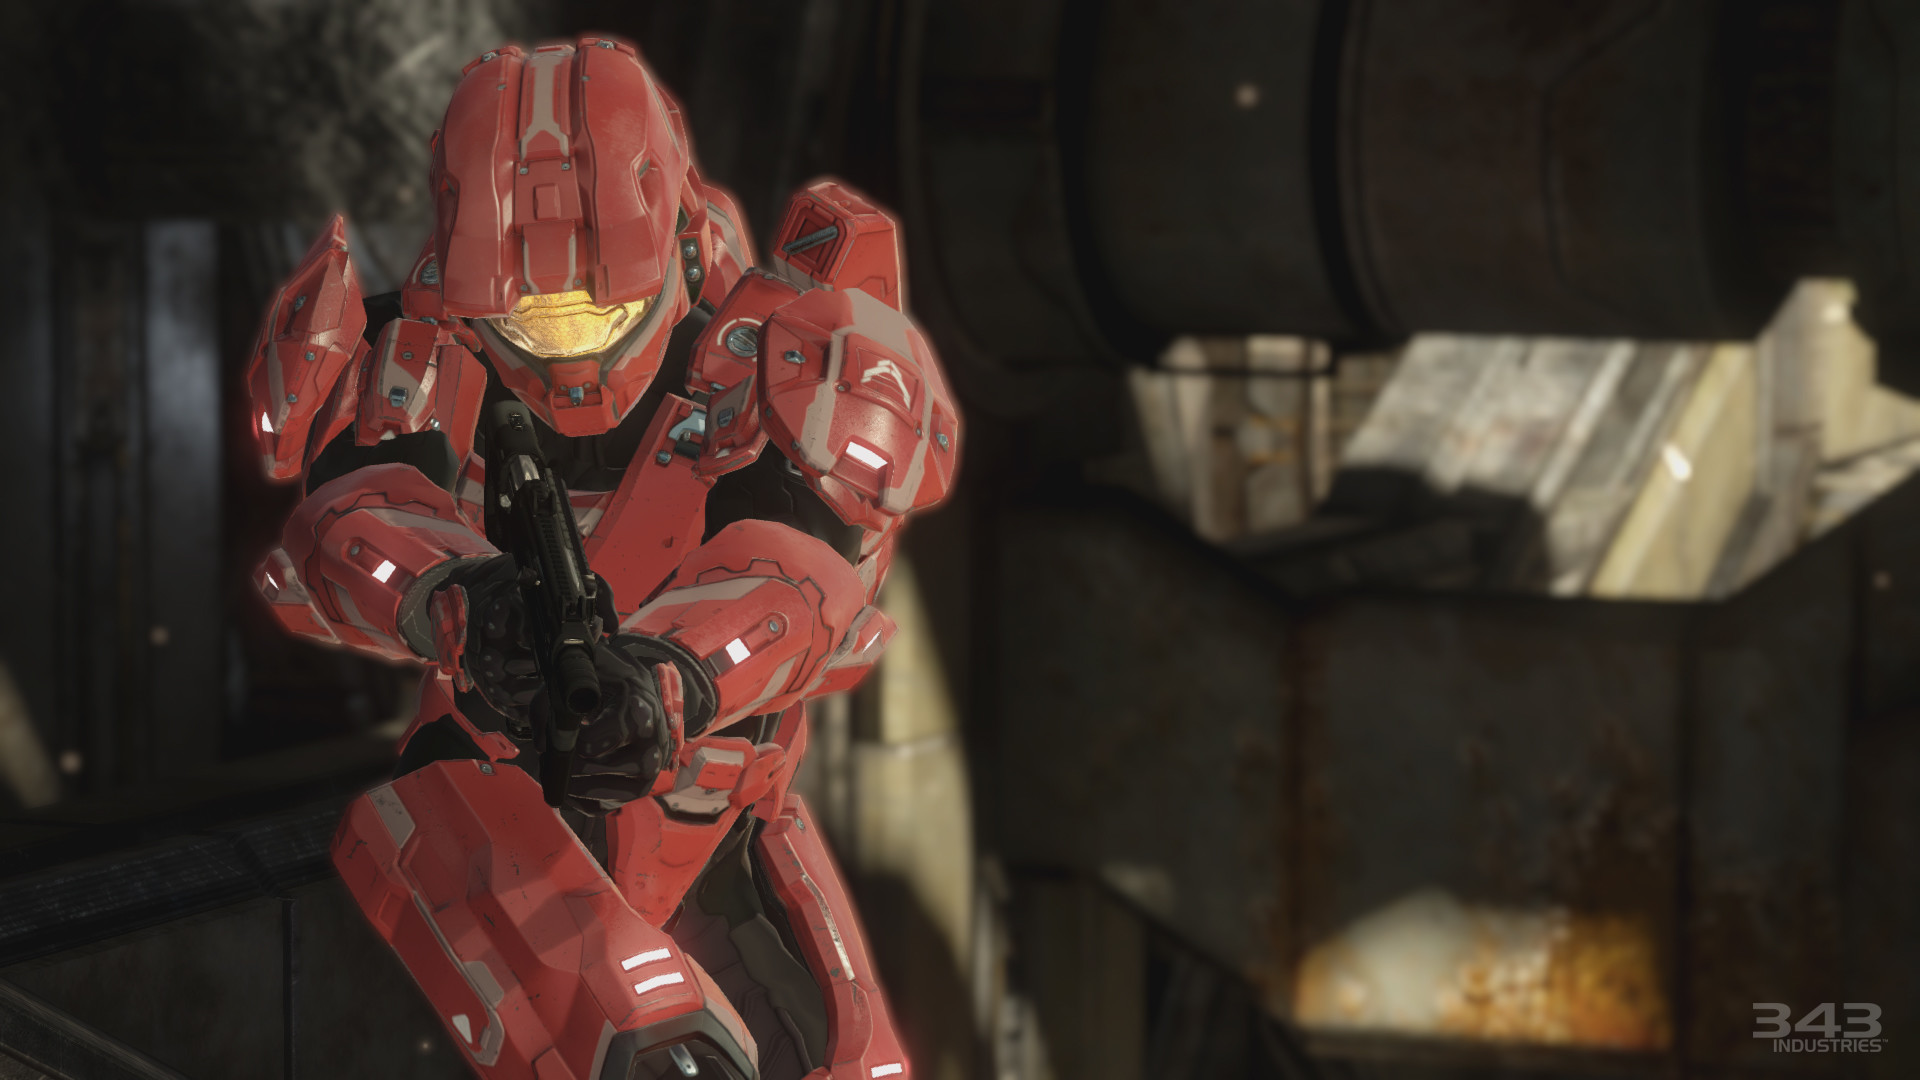 1920x1080 Halo: The Master Chief Collection Review: Remastered Chief